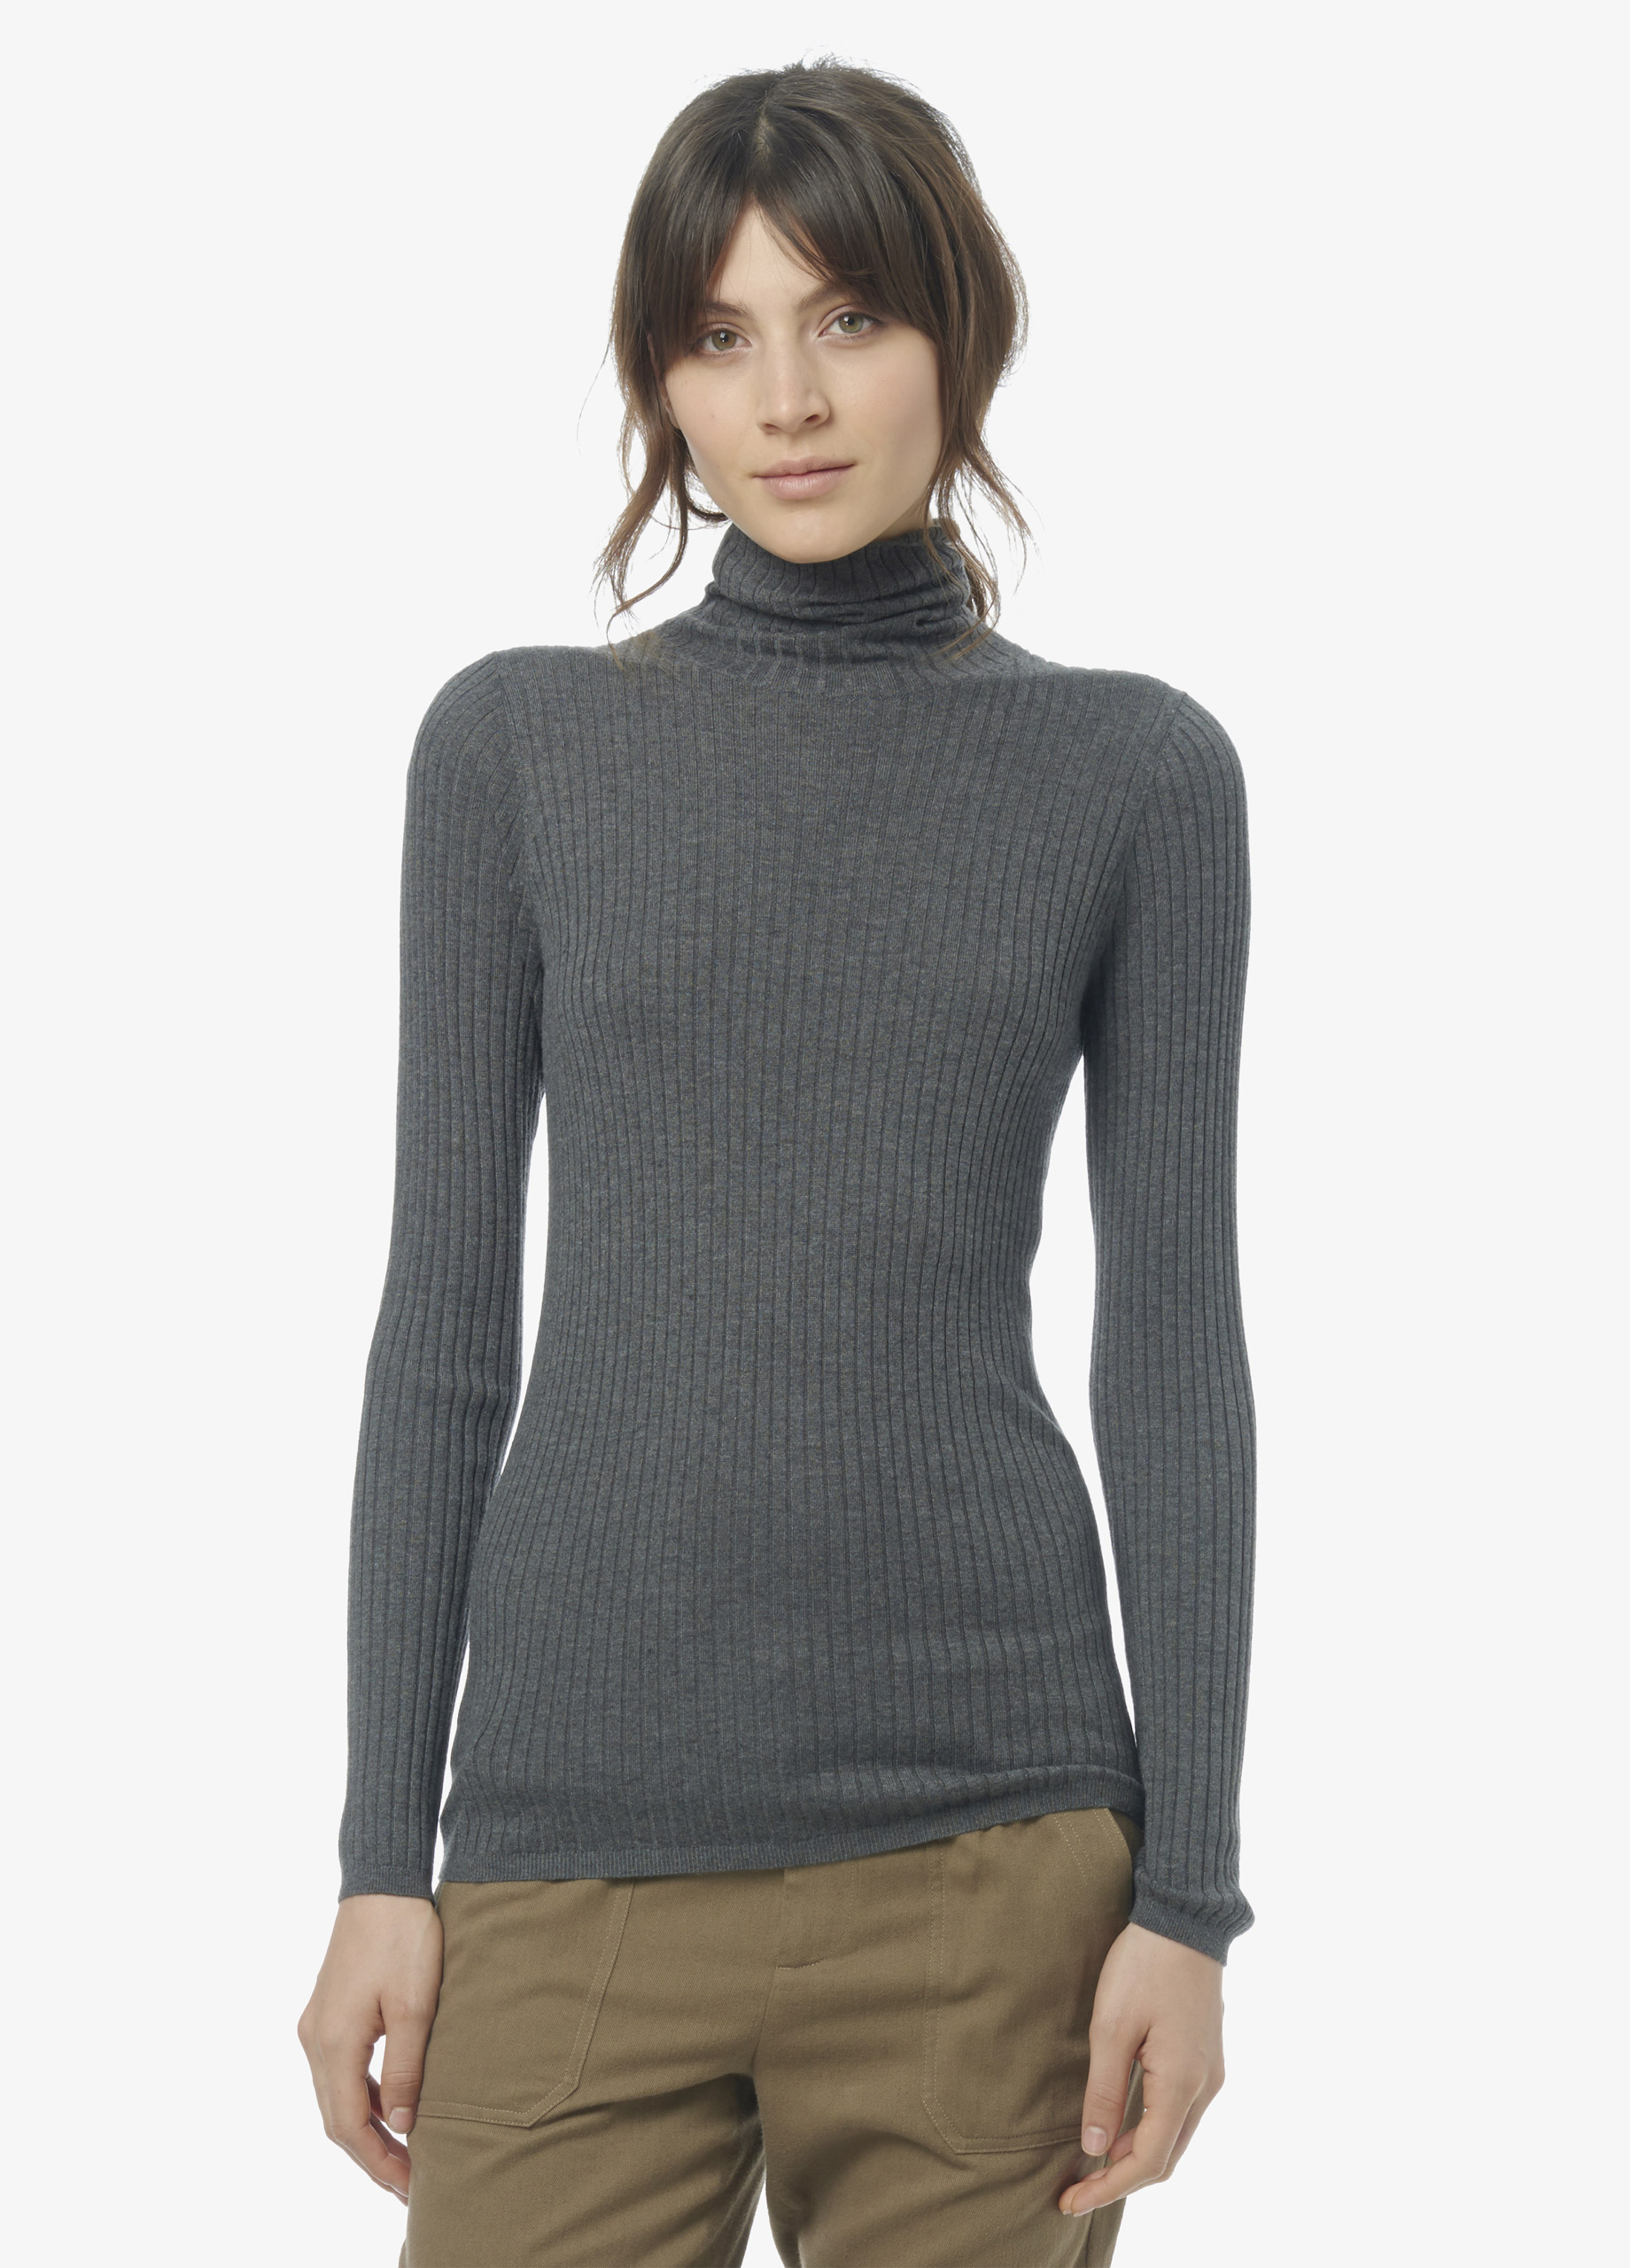 bbf72336e3 Vince Skinny Rib Turtleneck Sweater in Gray - Lyst